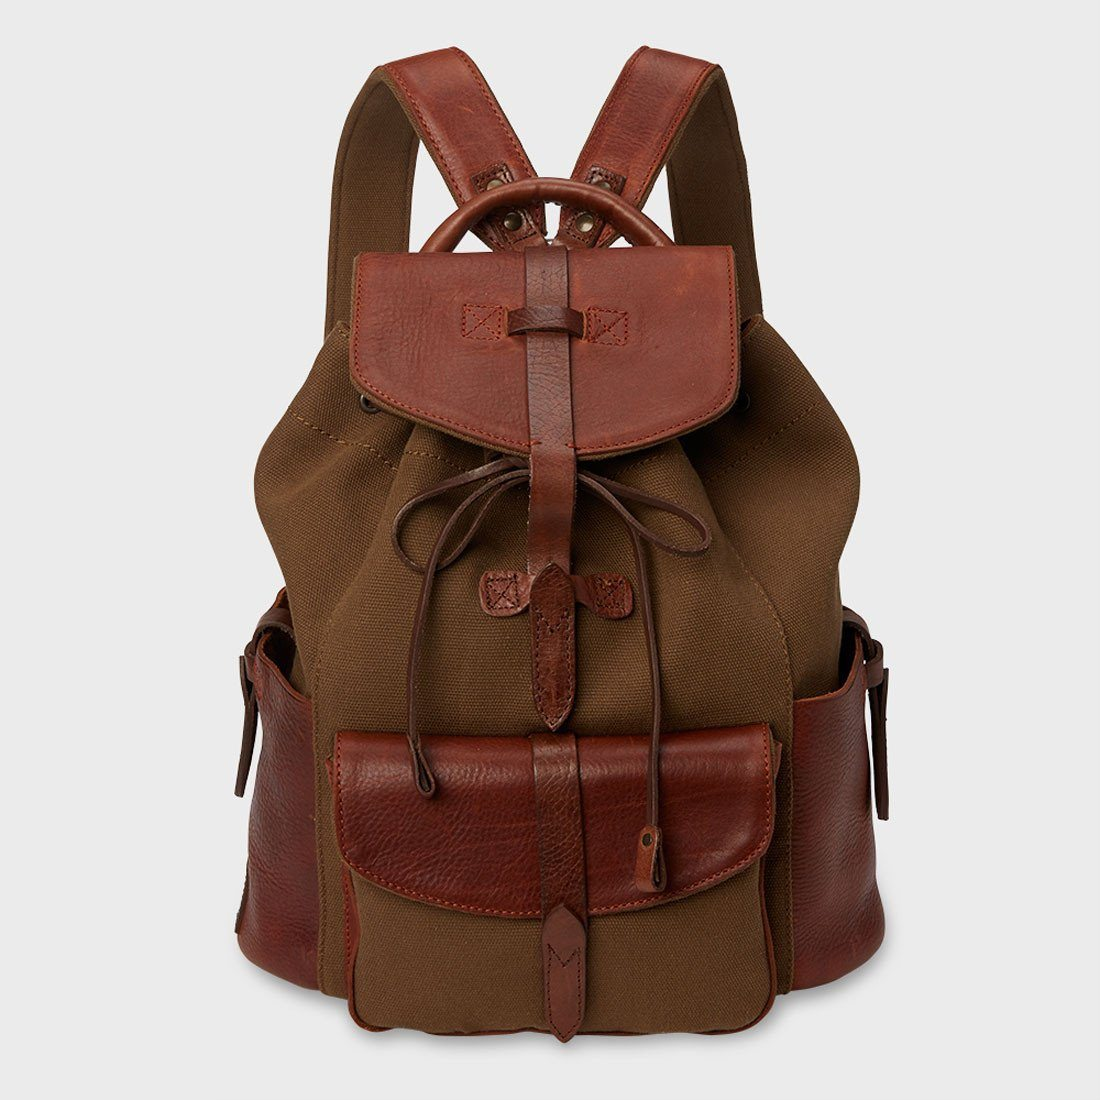 Will Leather Goods Canvas And Leather Rainier Backpack Tobacco Saddle 0f429bd93